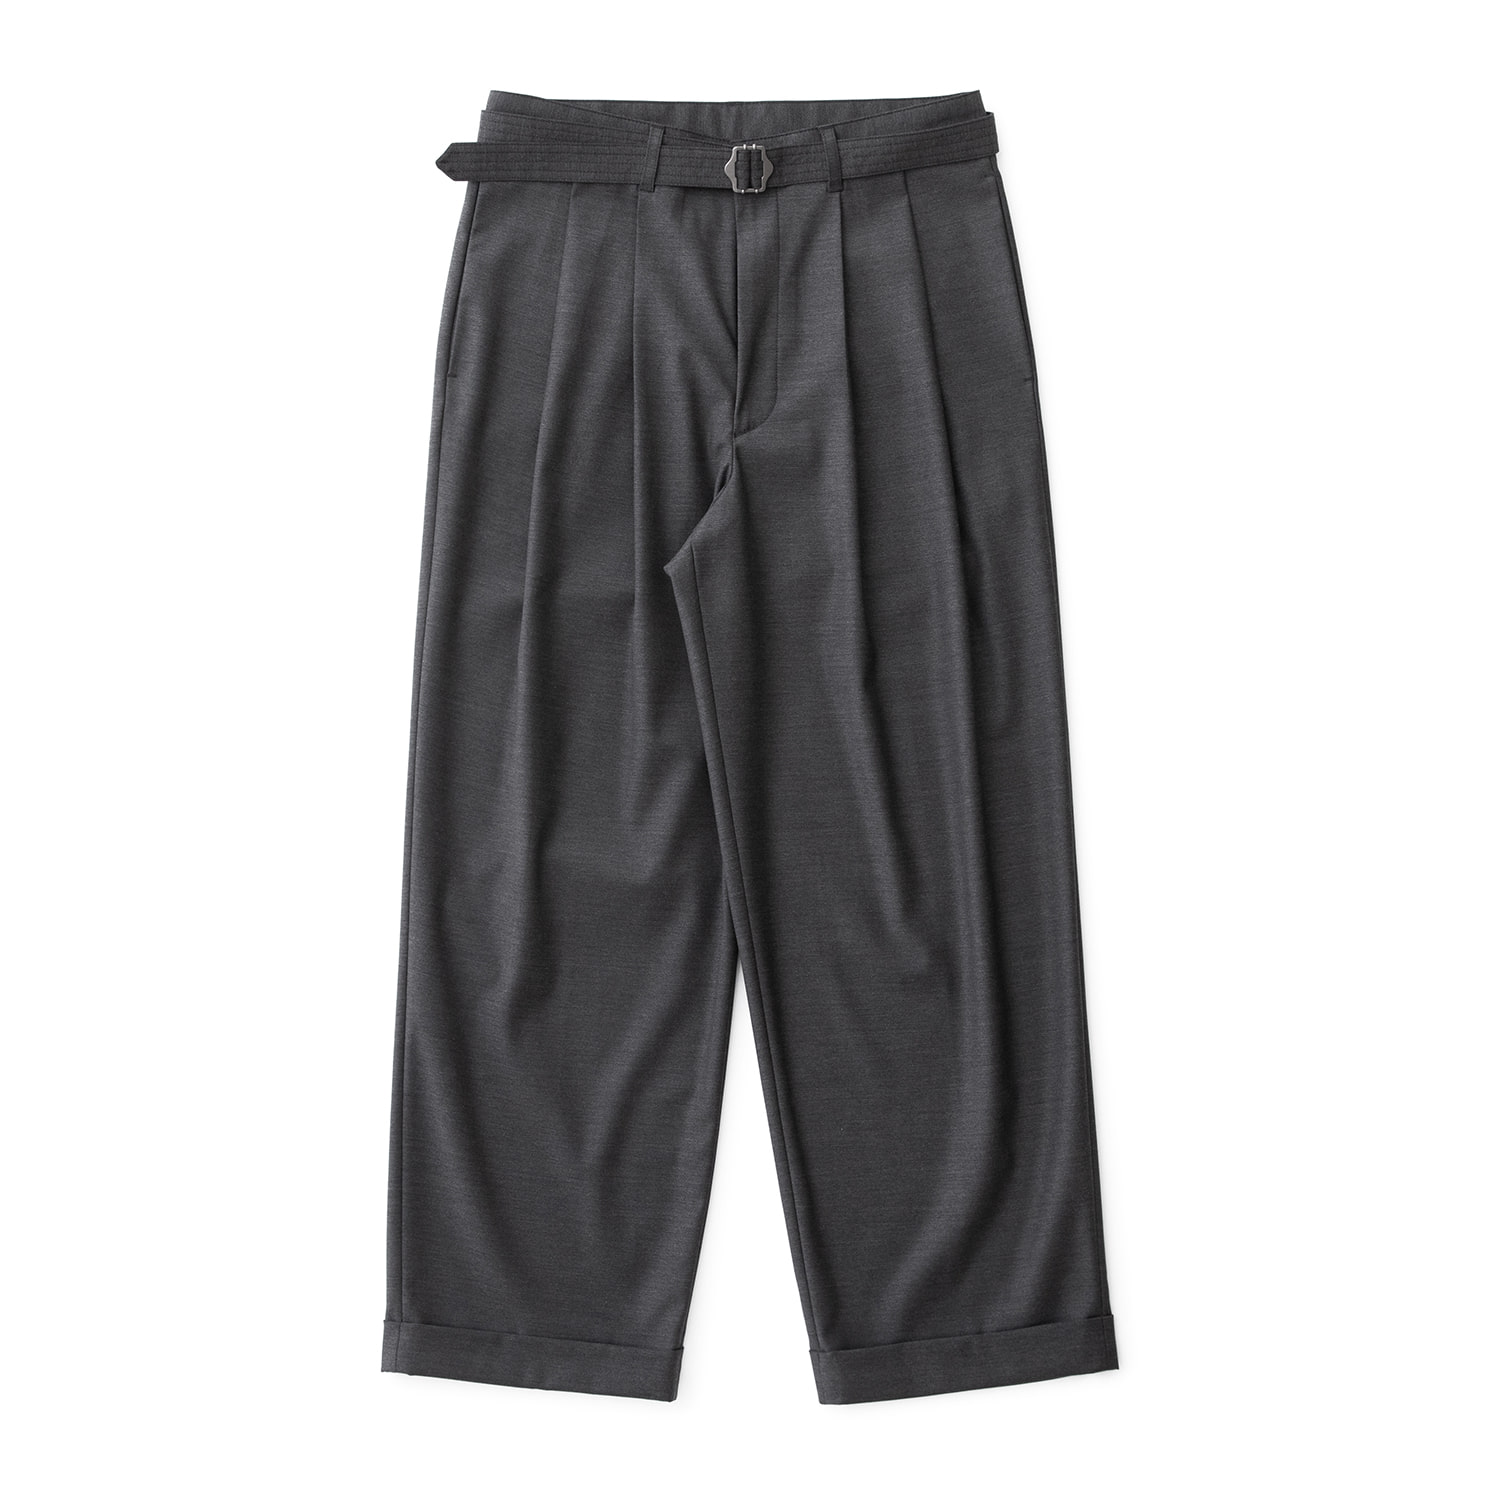 21SS Balance Turn Up Pants (Heather Charcoal)